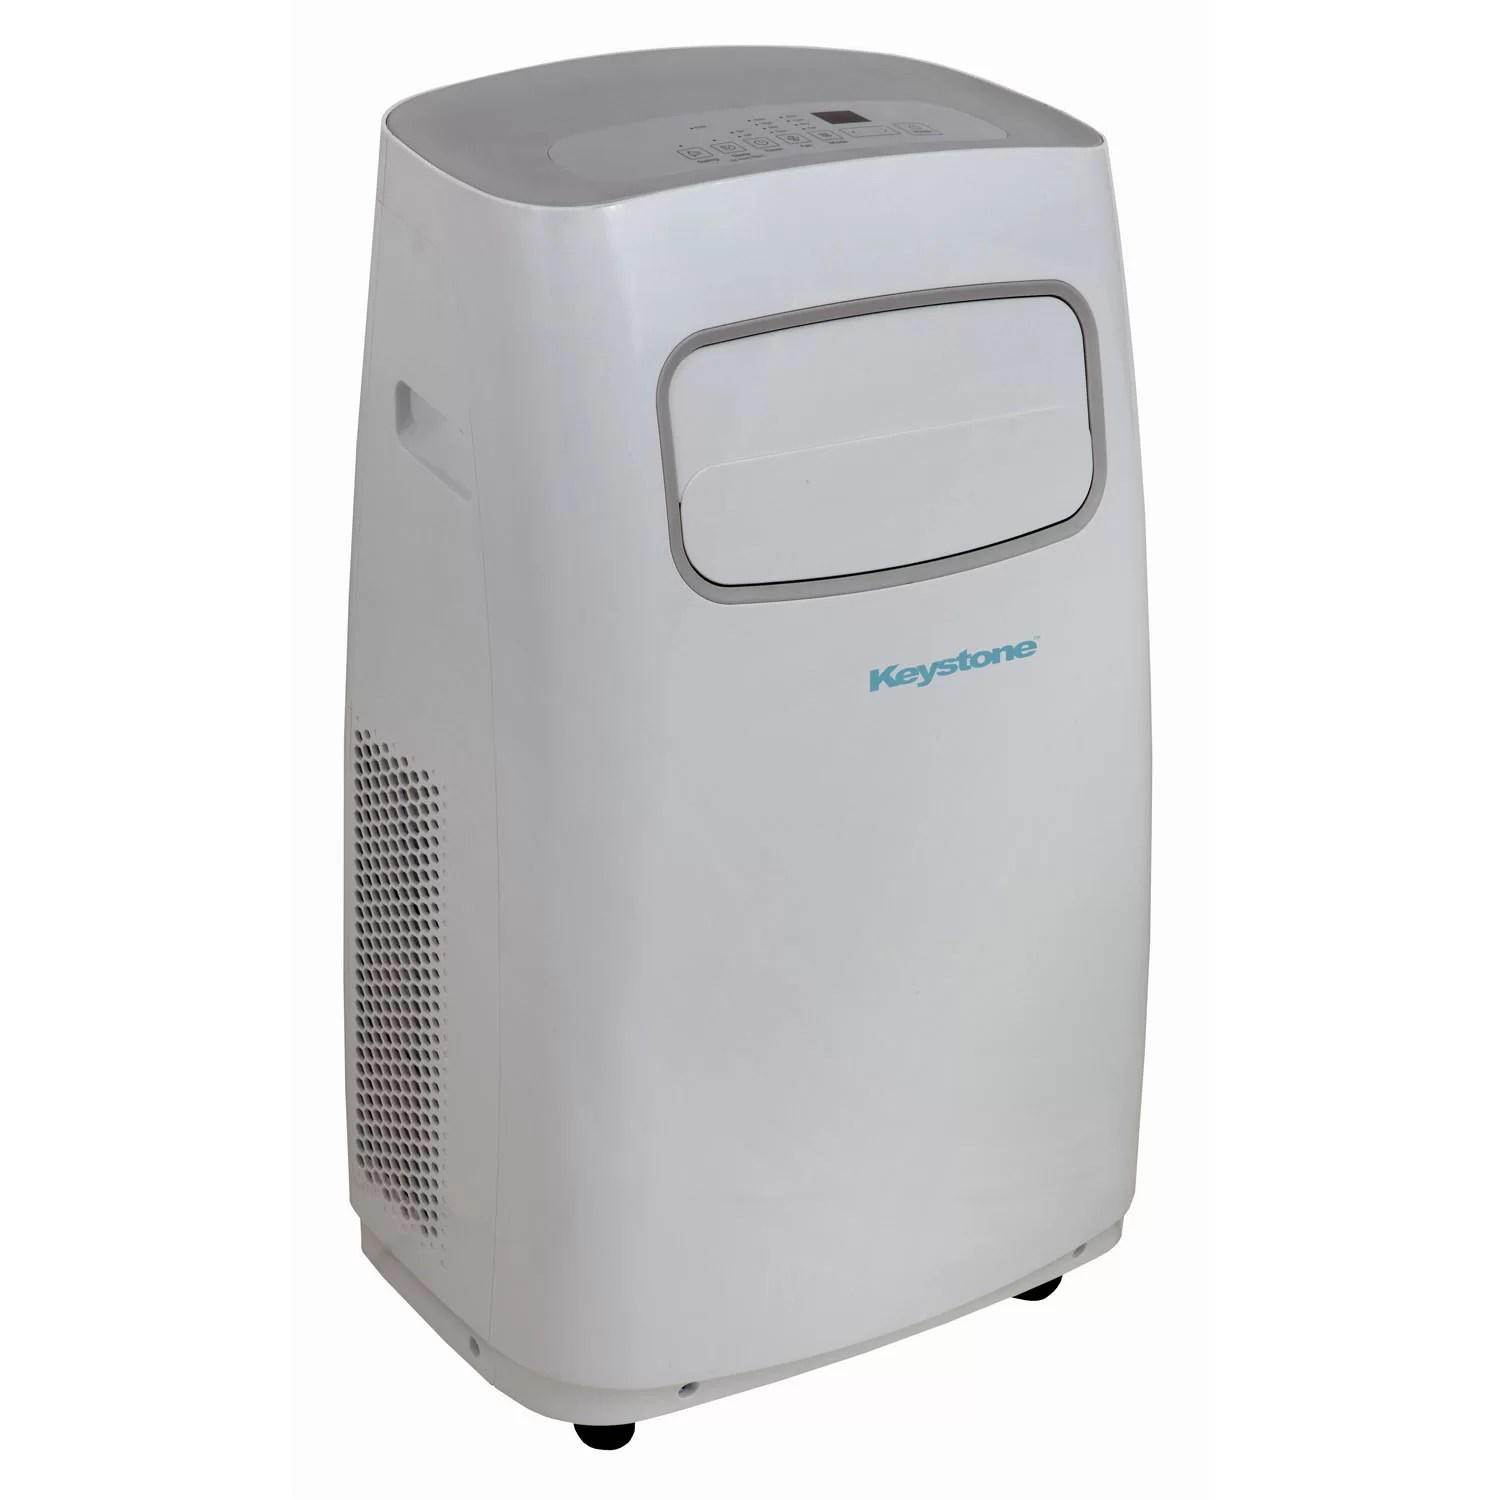 Portable Air Conditioner 12000 Btu Keystone 12 000 Btu Portable Air Conditioner With Remote